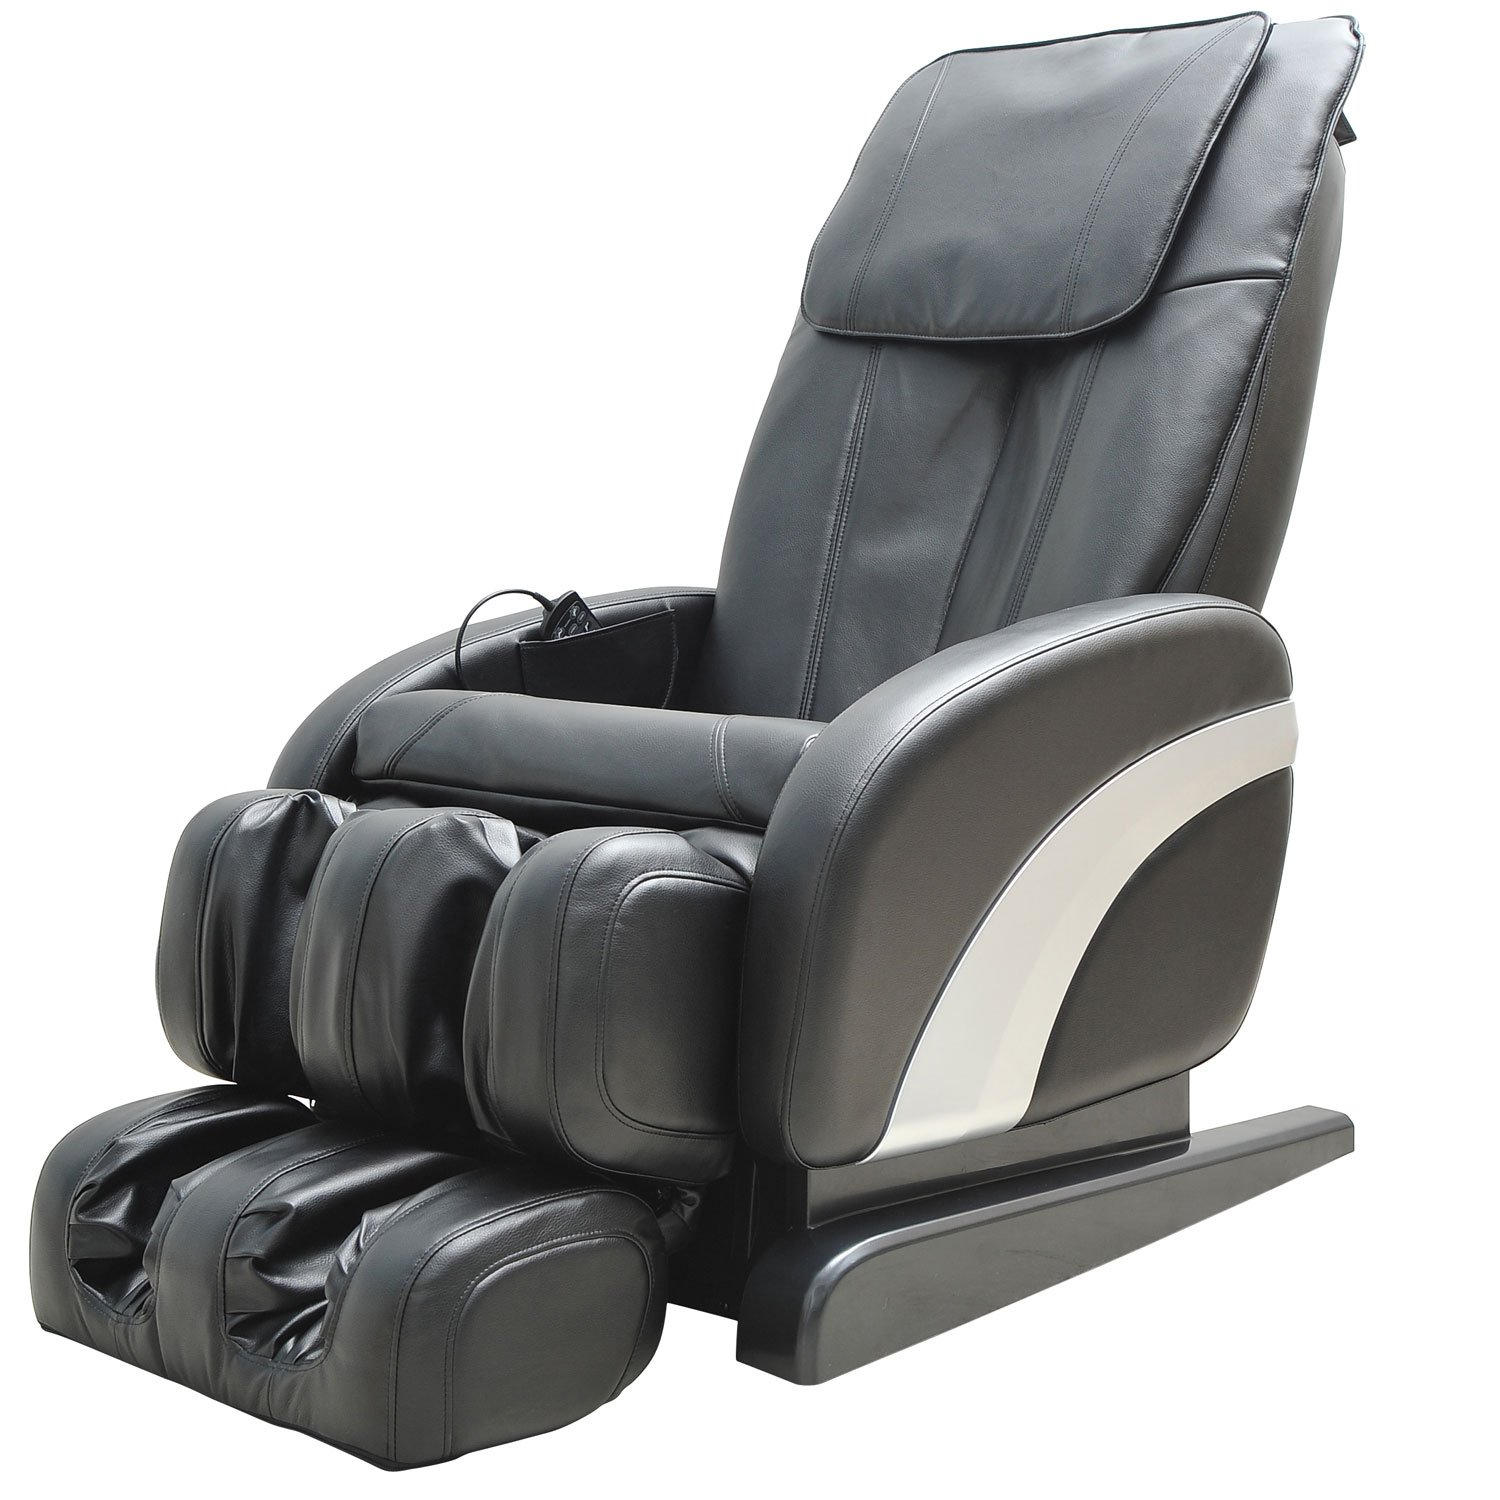 SASAKI 10 5 Series 5D Supreme Massage Chair Amazon Health